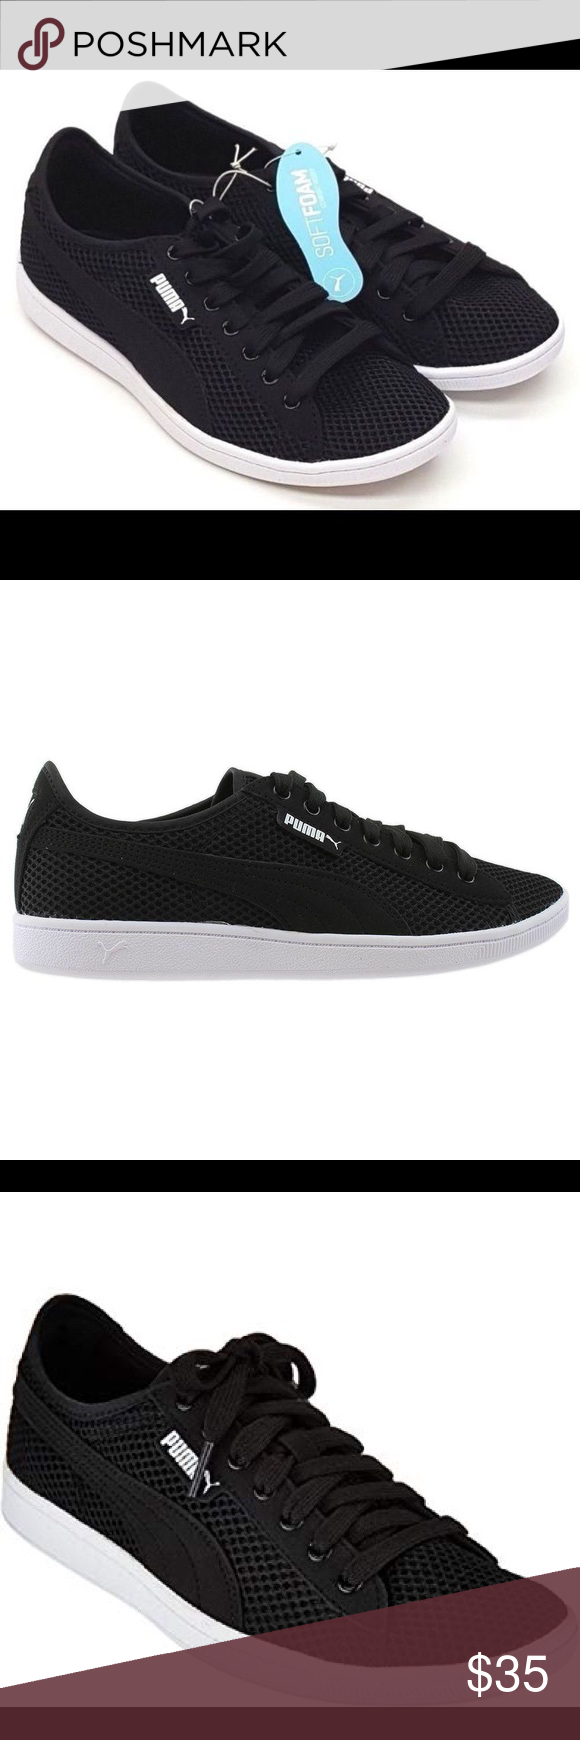 """59299a46e25f41 Puma """"vikky"""" mesh sneaker with Softfoam (memory foam) inside soles. Perfect  condition new with tags. Black. Women s 8 Puma Shoes Sneakers"""